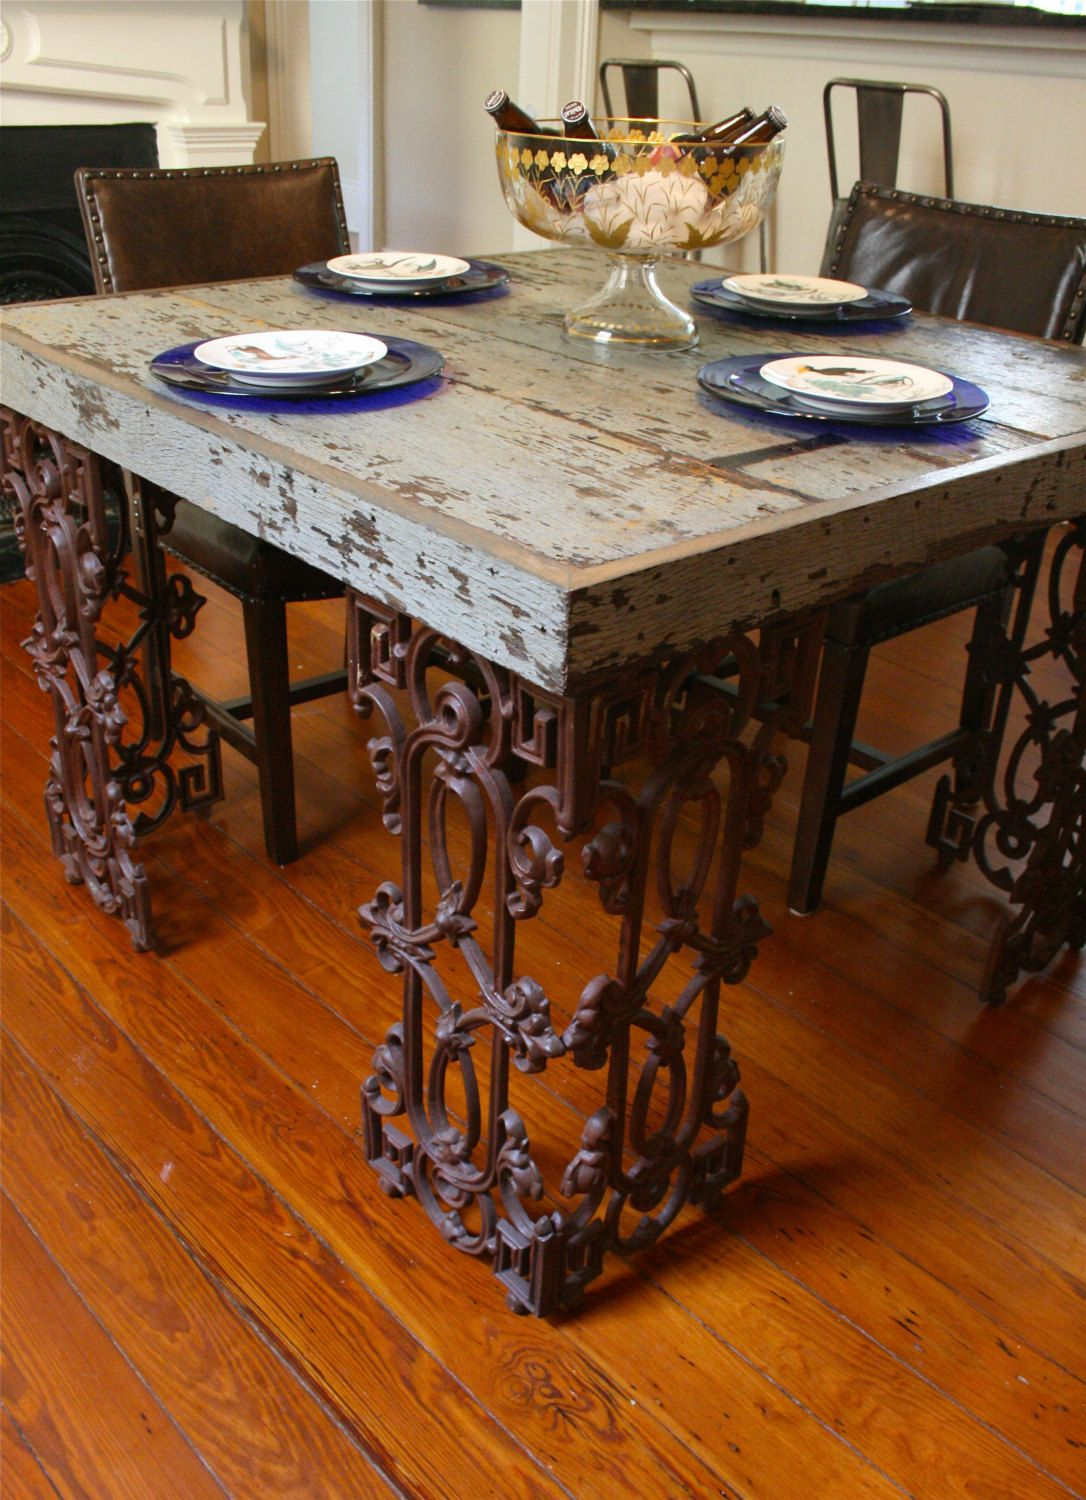 New Orleans Dining Room Table Made From Reclaimed Wood and Wrought ...